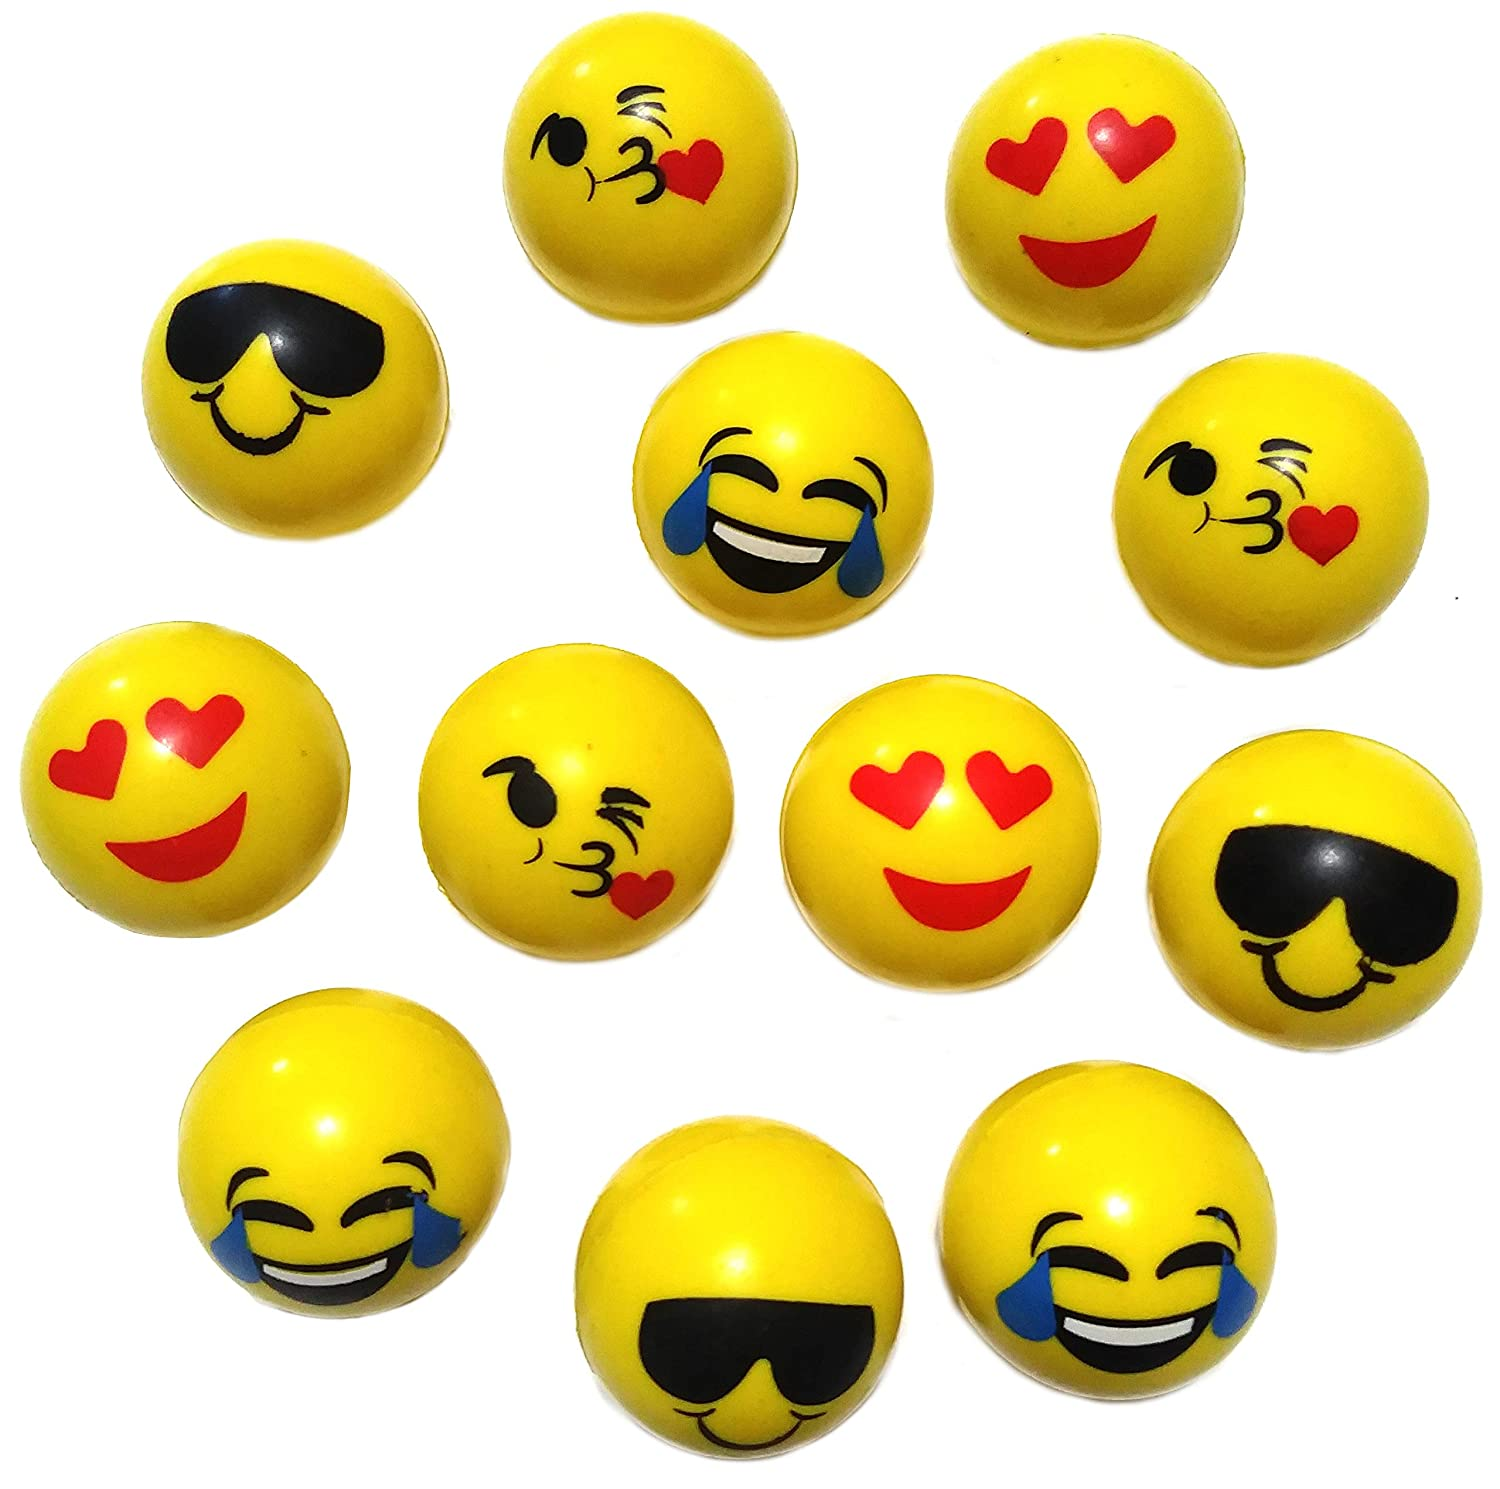 Sunflower Day Emoji High Bounce Balls 12 Pieces Per Order 38mm Bouncing Balls for Kids